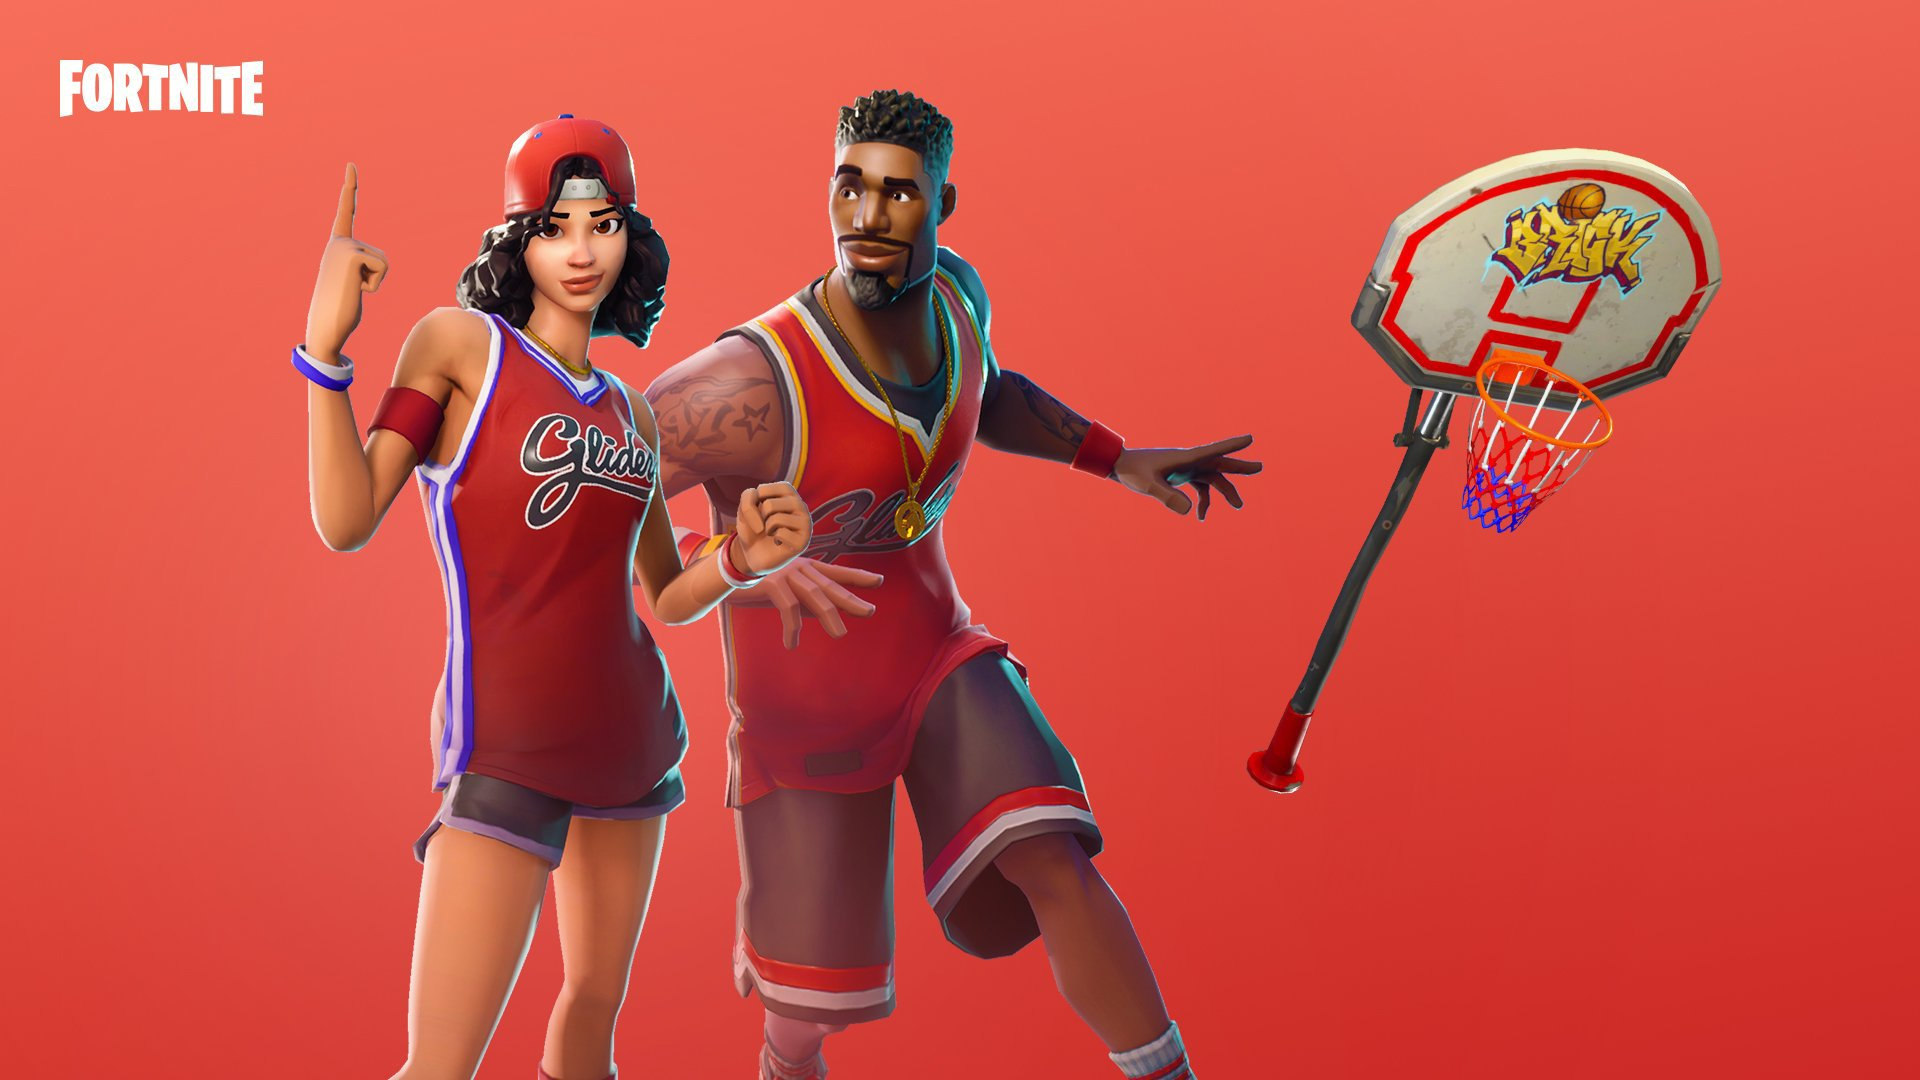 Fortnite Jumpshot Skin   Outfit PNGs Images   Pro Game Guides 1920x1080